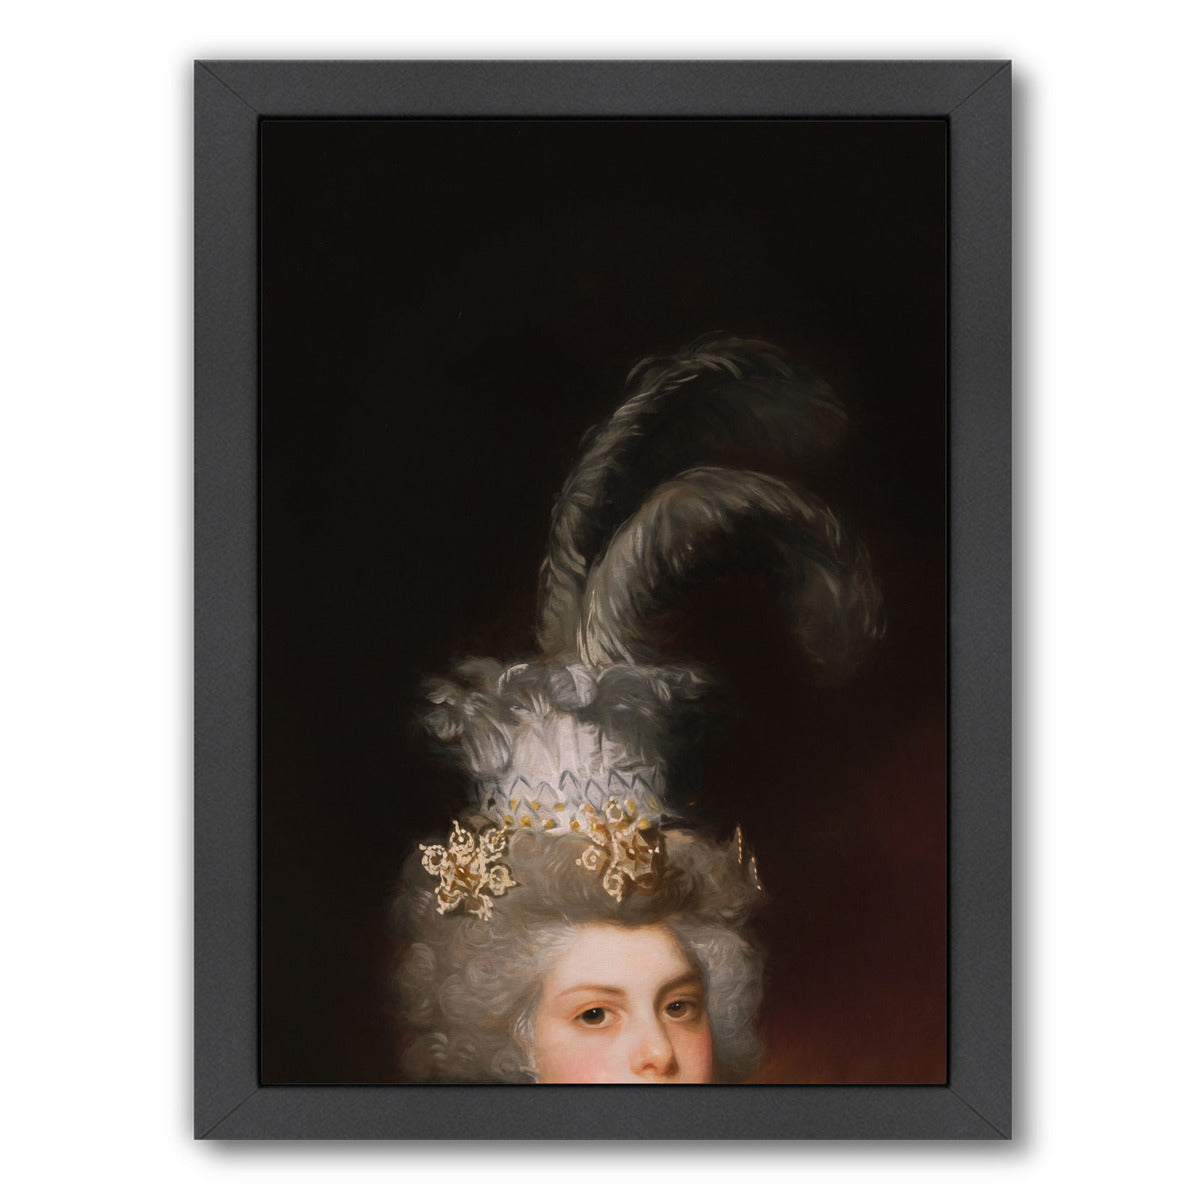 The Hat By Chaos & Wonder Design - Black Framed Print - Wall Art - Americanflat